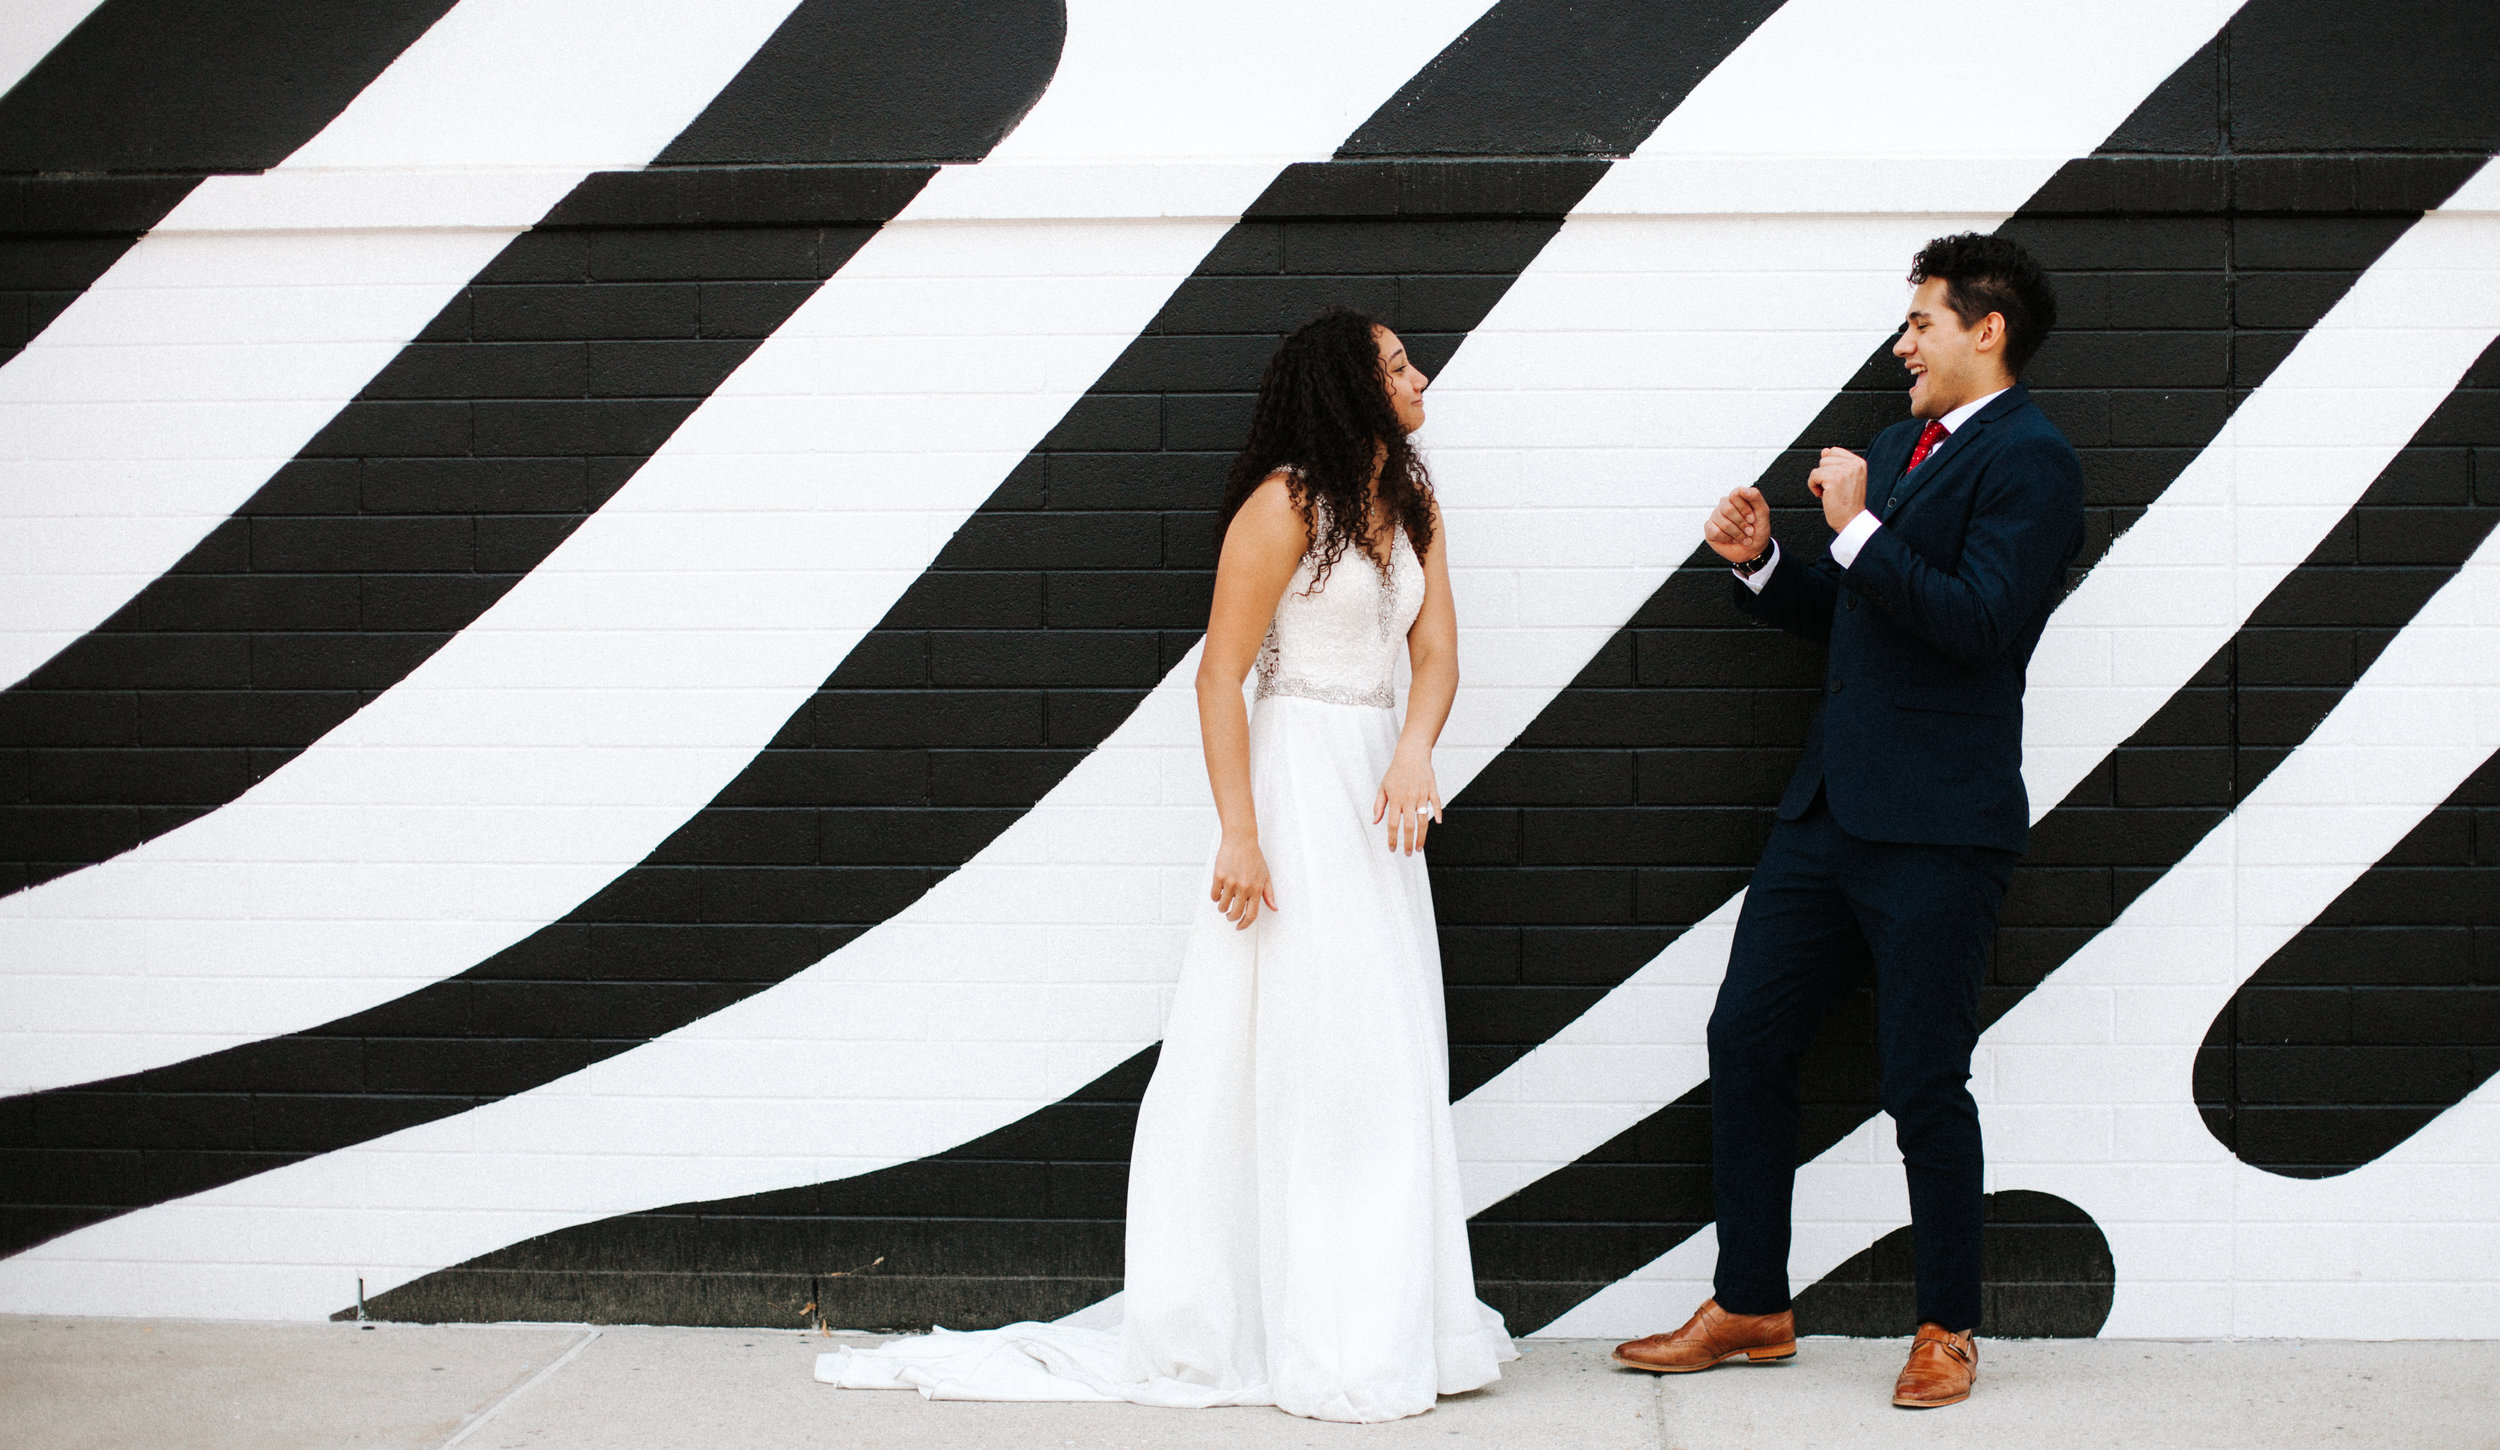 Black and white mural | Utah wedding photography, Salt Lake City Wedding Photos | Unique wedding photo | Candid dancing wedding photo | Bright, colorful wedding photography | Marina Rey Photography